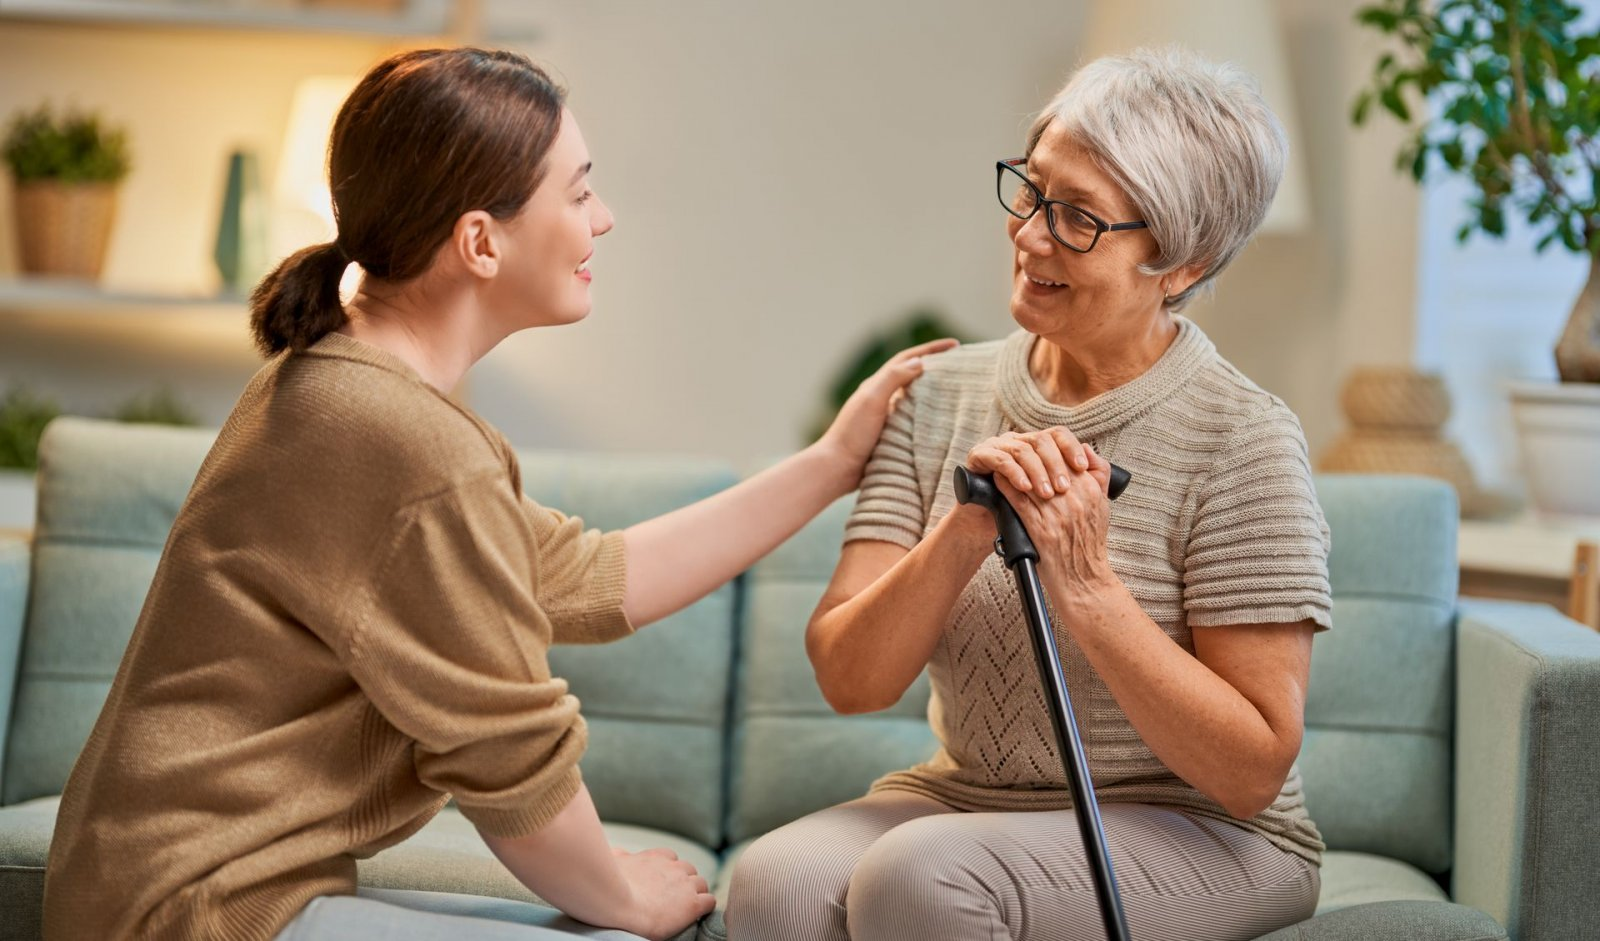 Assisted Living vs. Memory Care - What's the Difference?